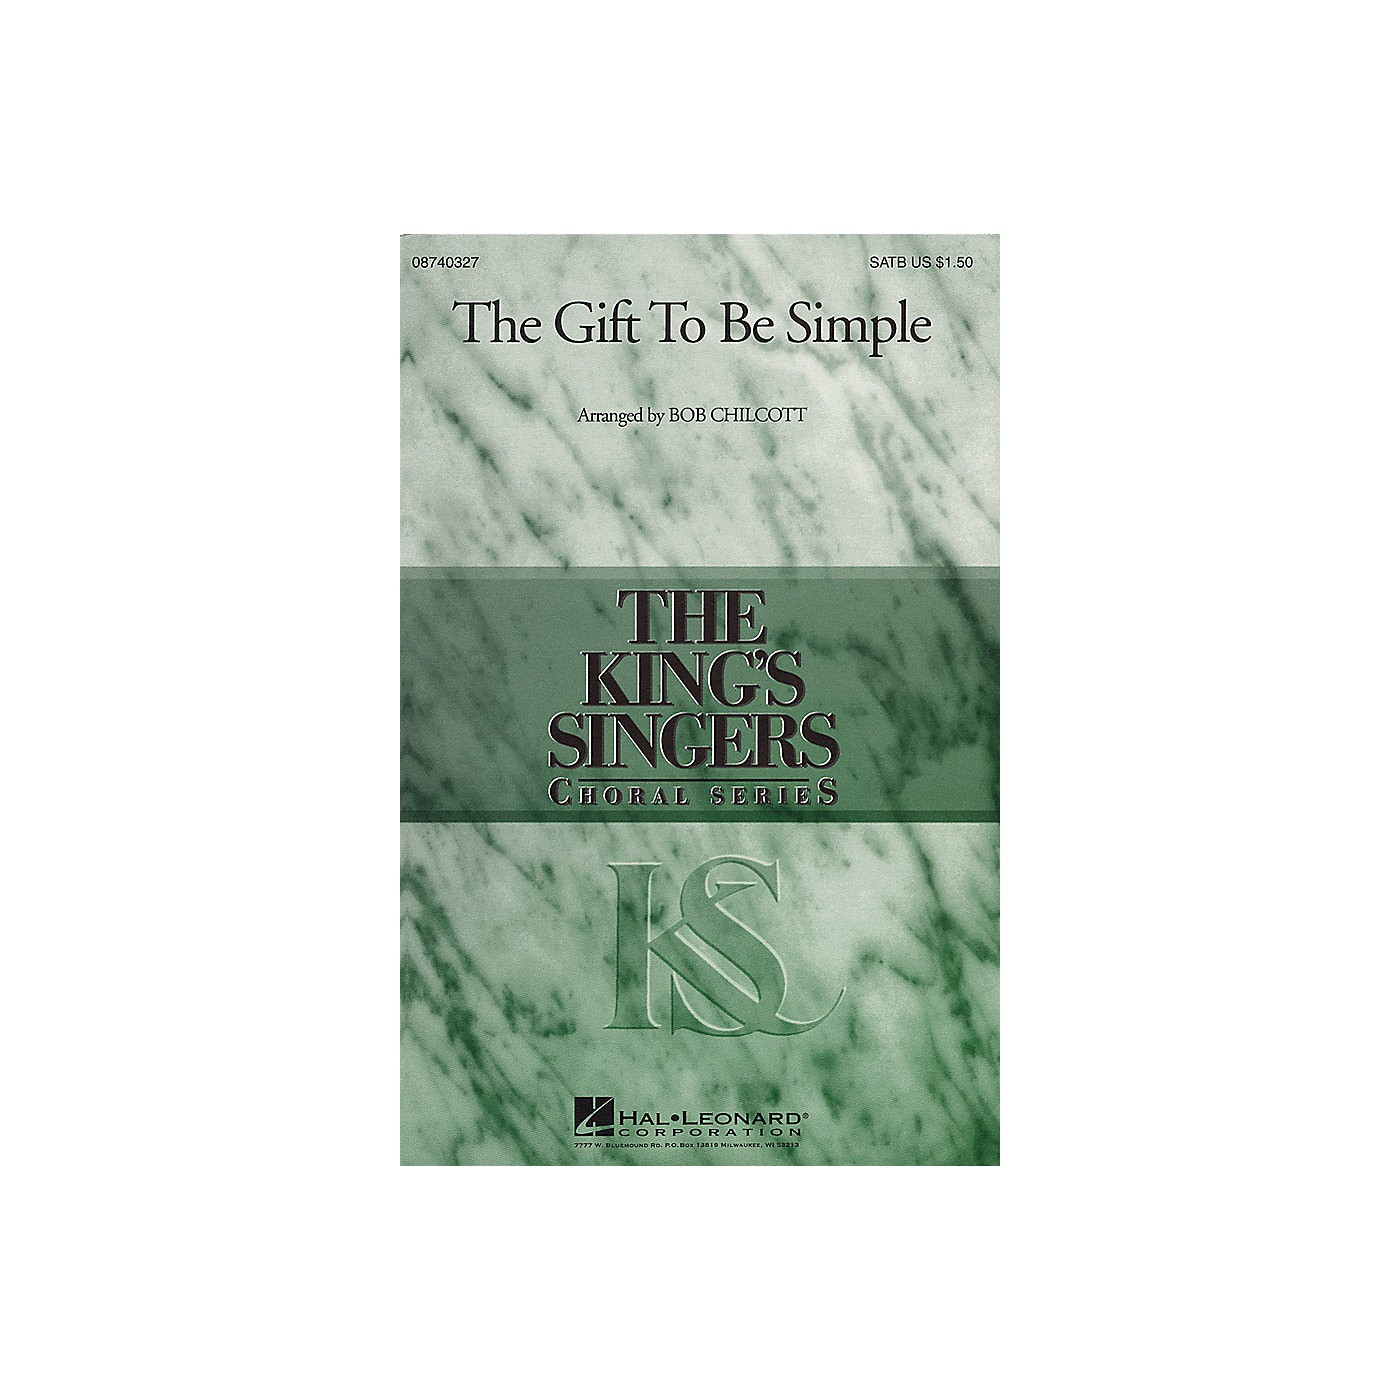 Hal Leonard The Gift to Be Simple SATB by The King's Singers arranged by Bob Chilcott thumbnail